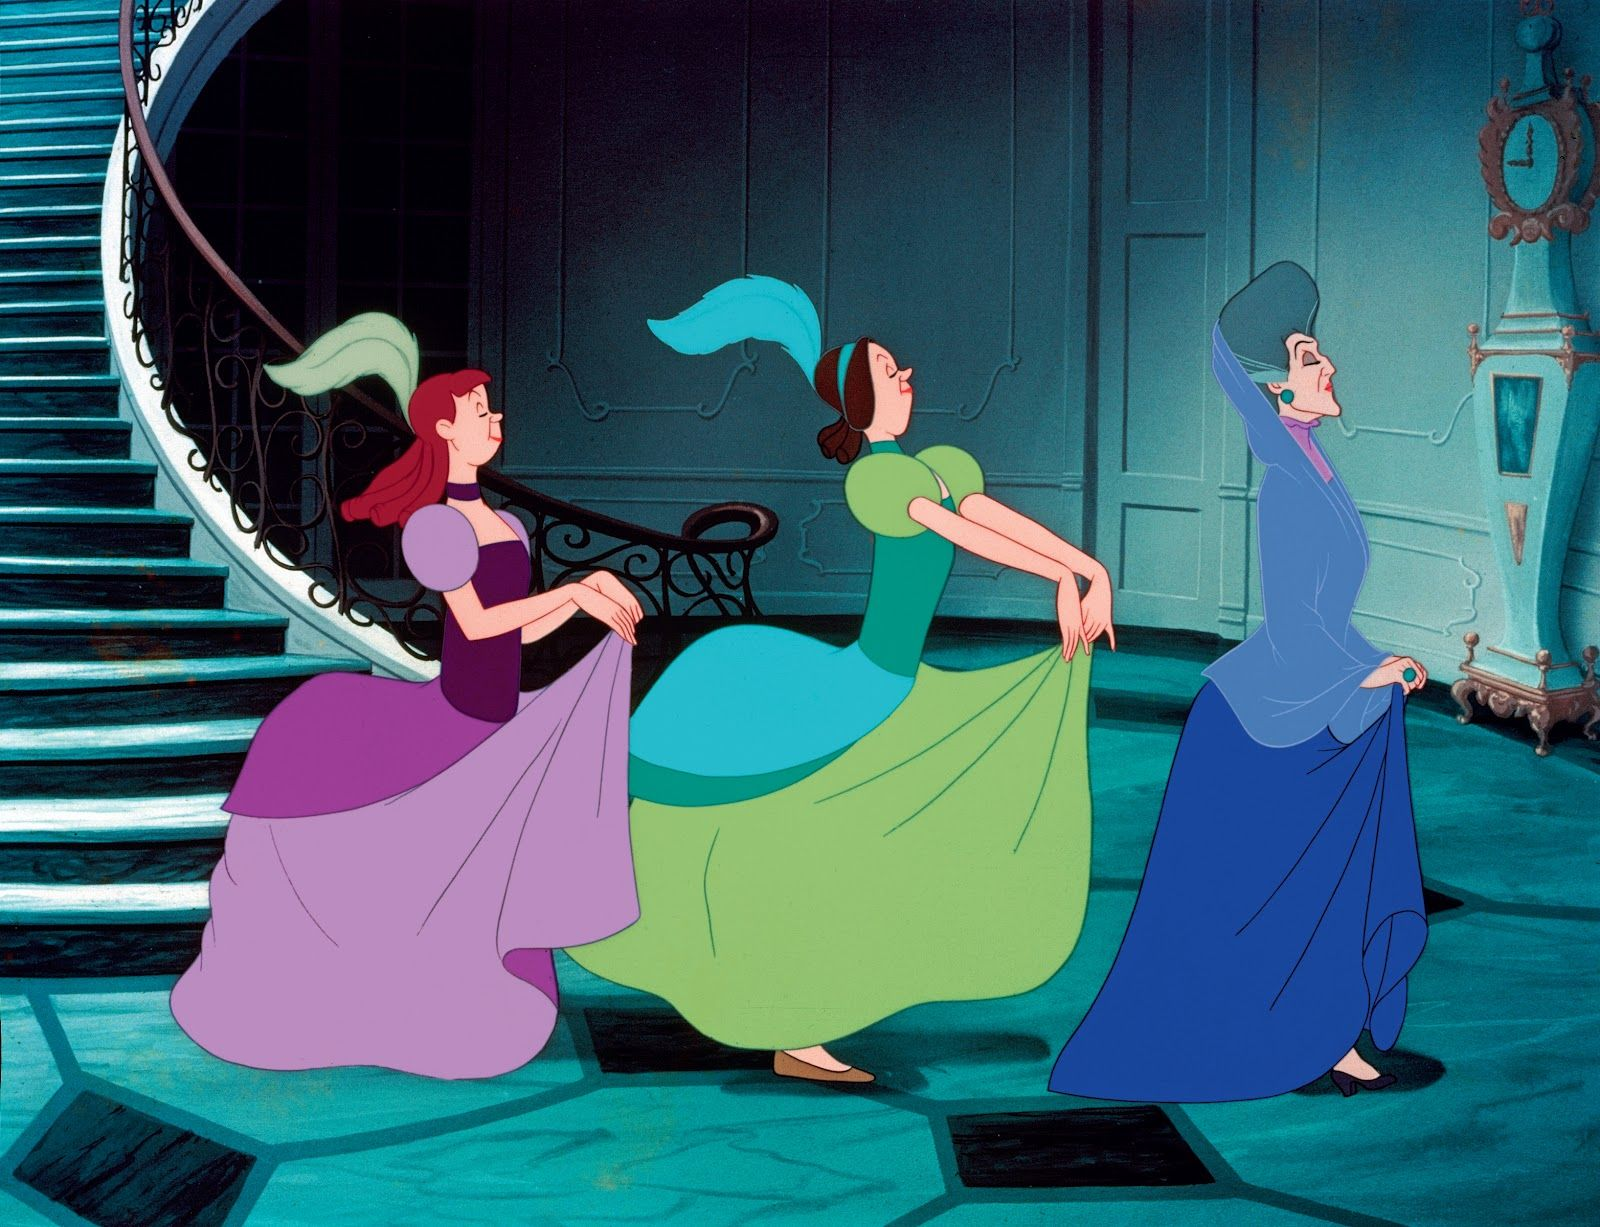 The haughty & cruel stepfamily left for the royal ball, leaving ...